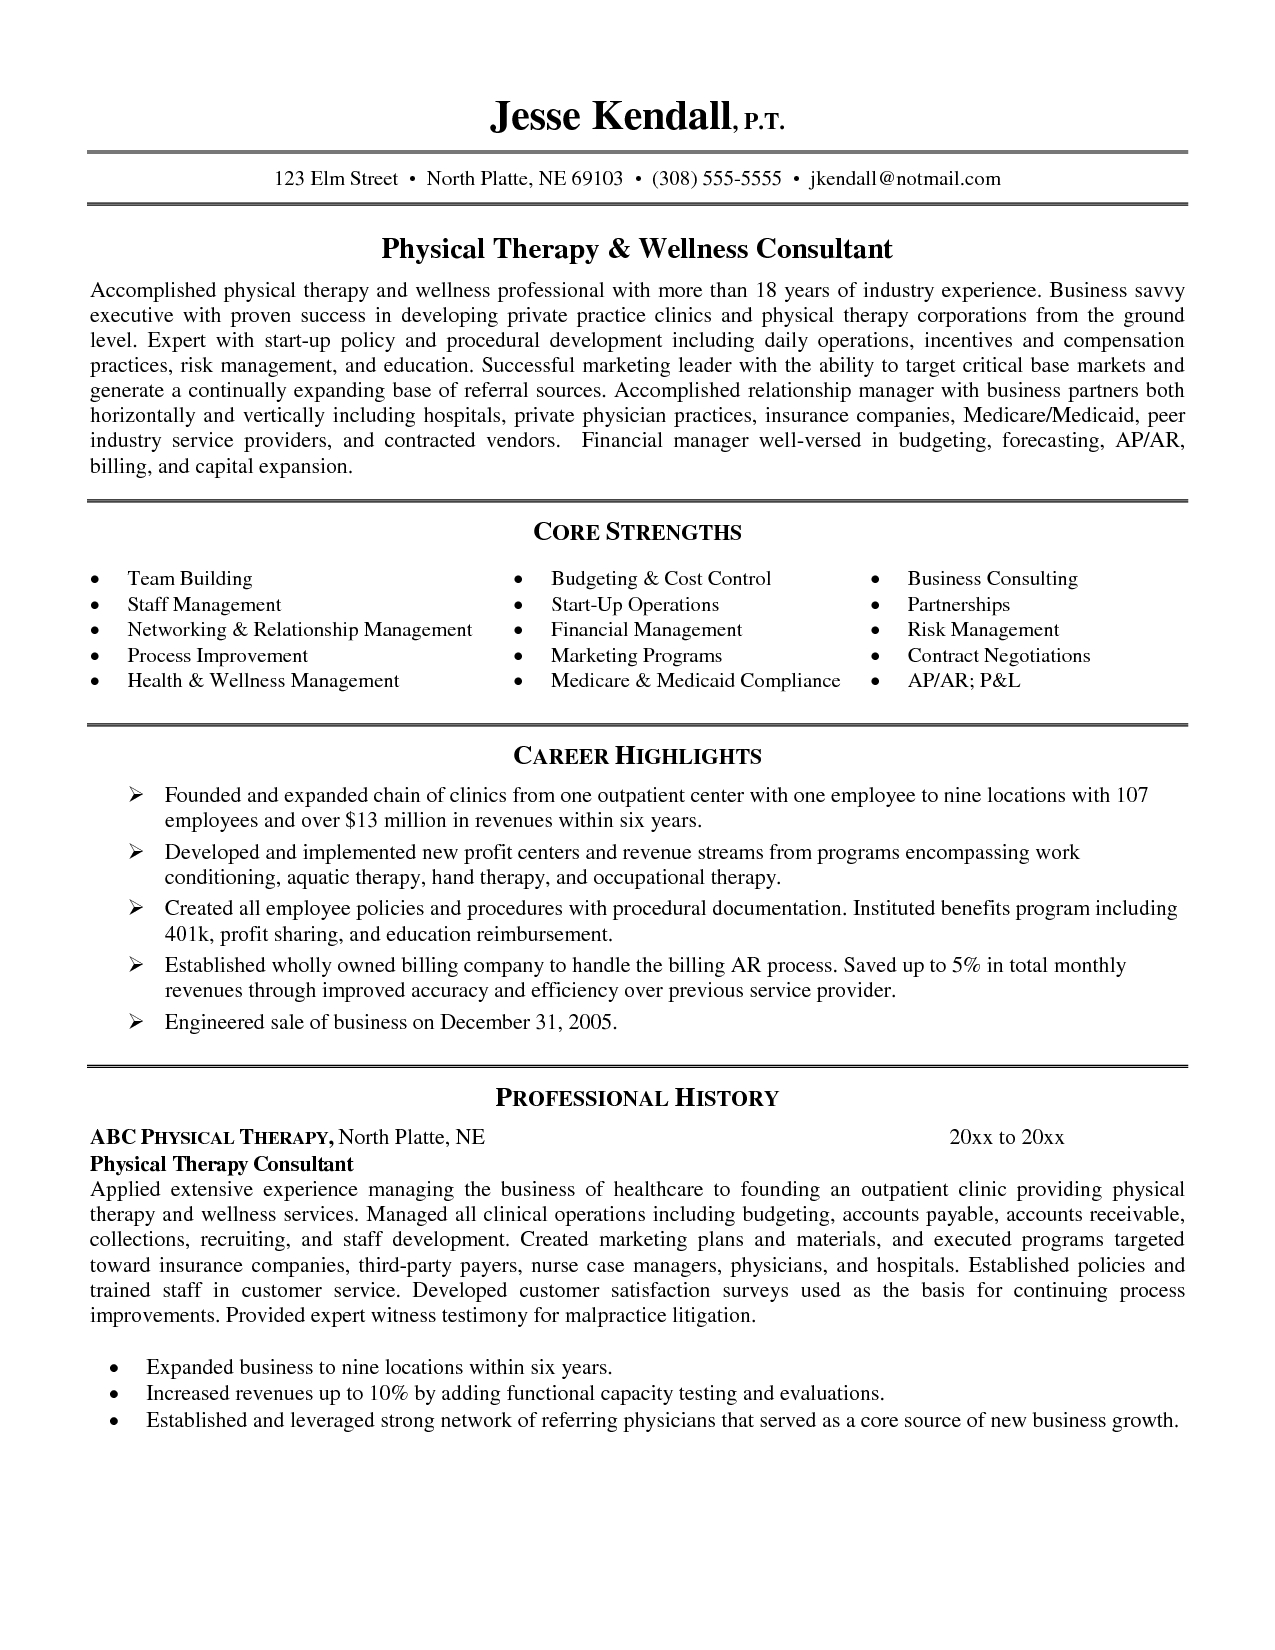 Physical therapy Cover Letter Template - Massage therapy Resumes Samples Roddyschrock